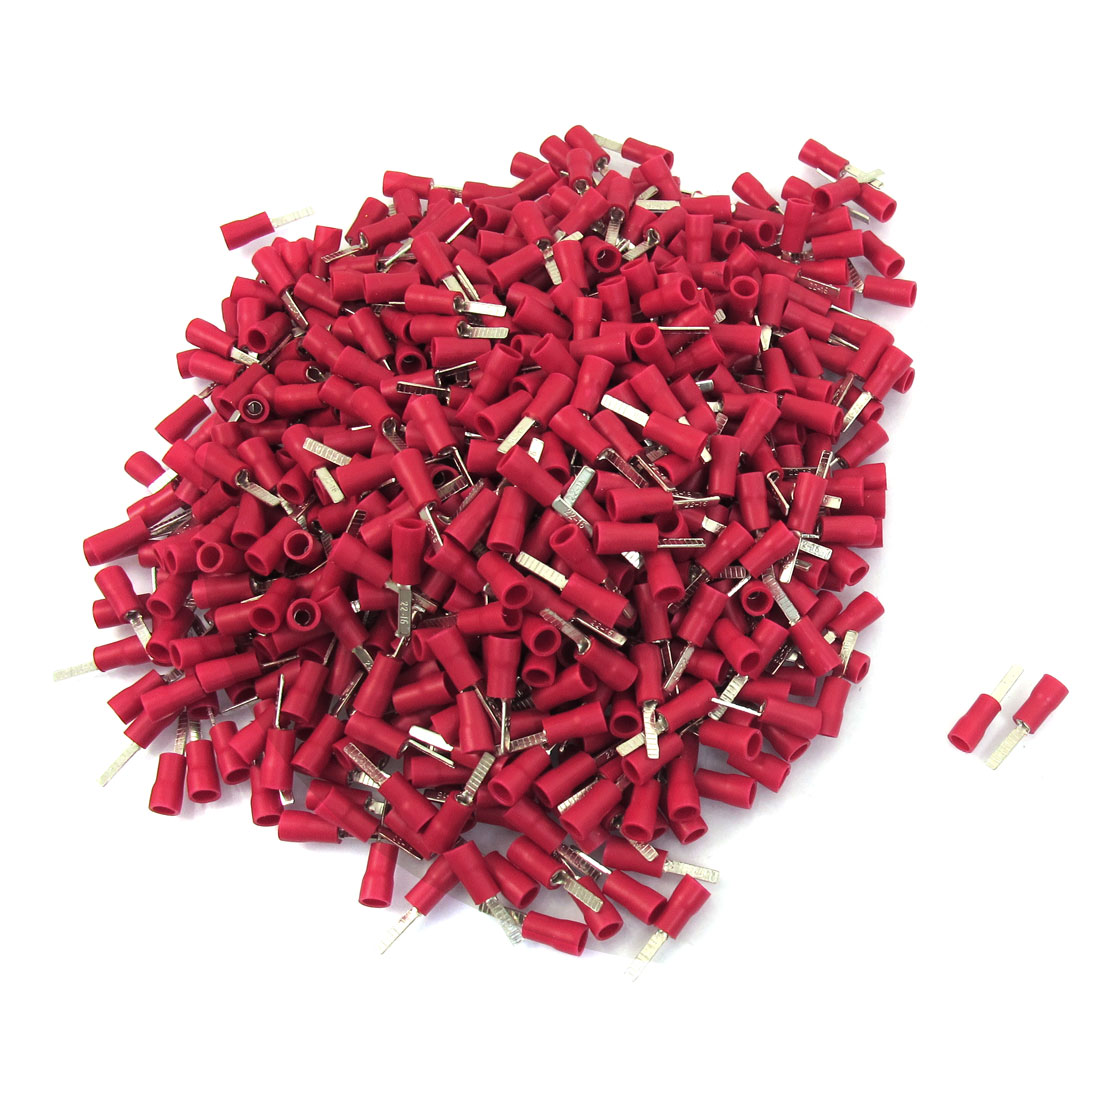 1000 Pcs 22-16 AWG Red PVC Sleeve Insulated Pin Terminals Connector 19A